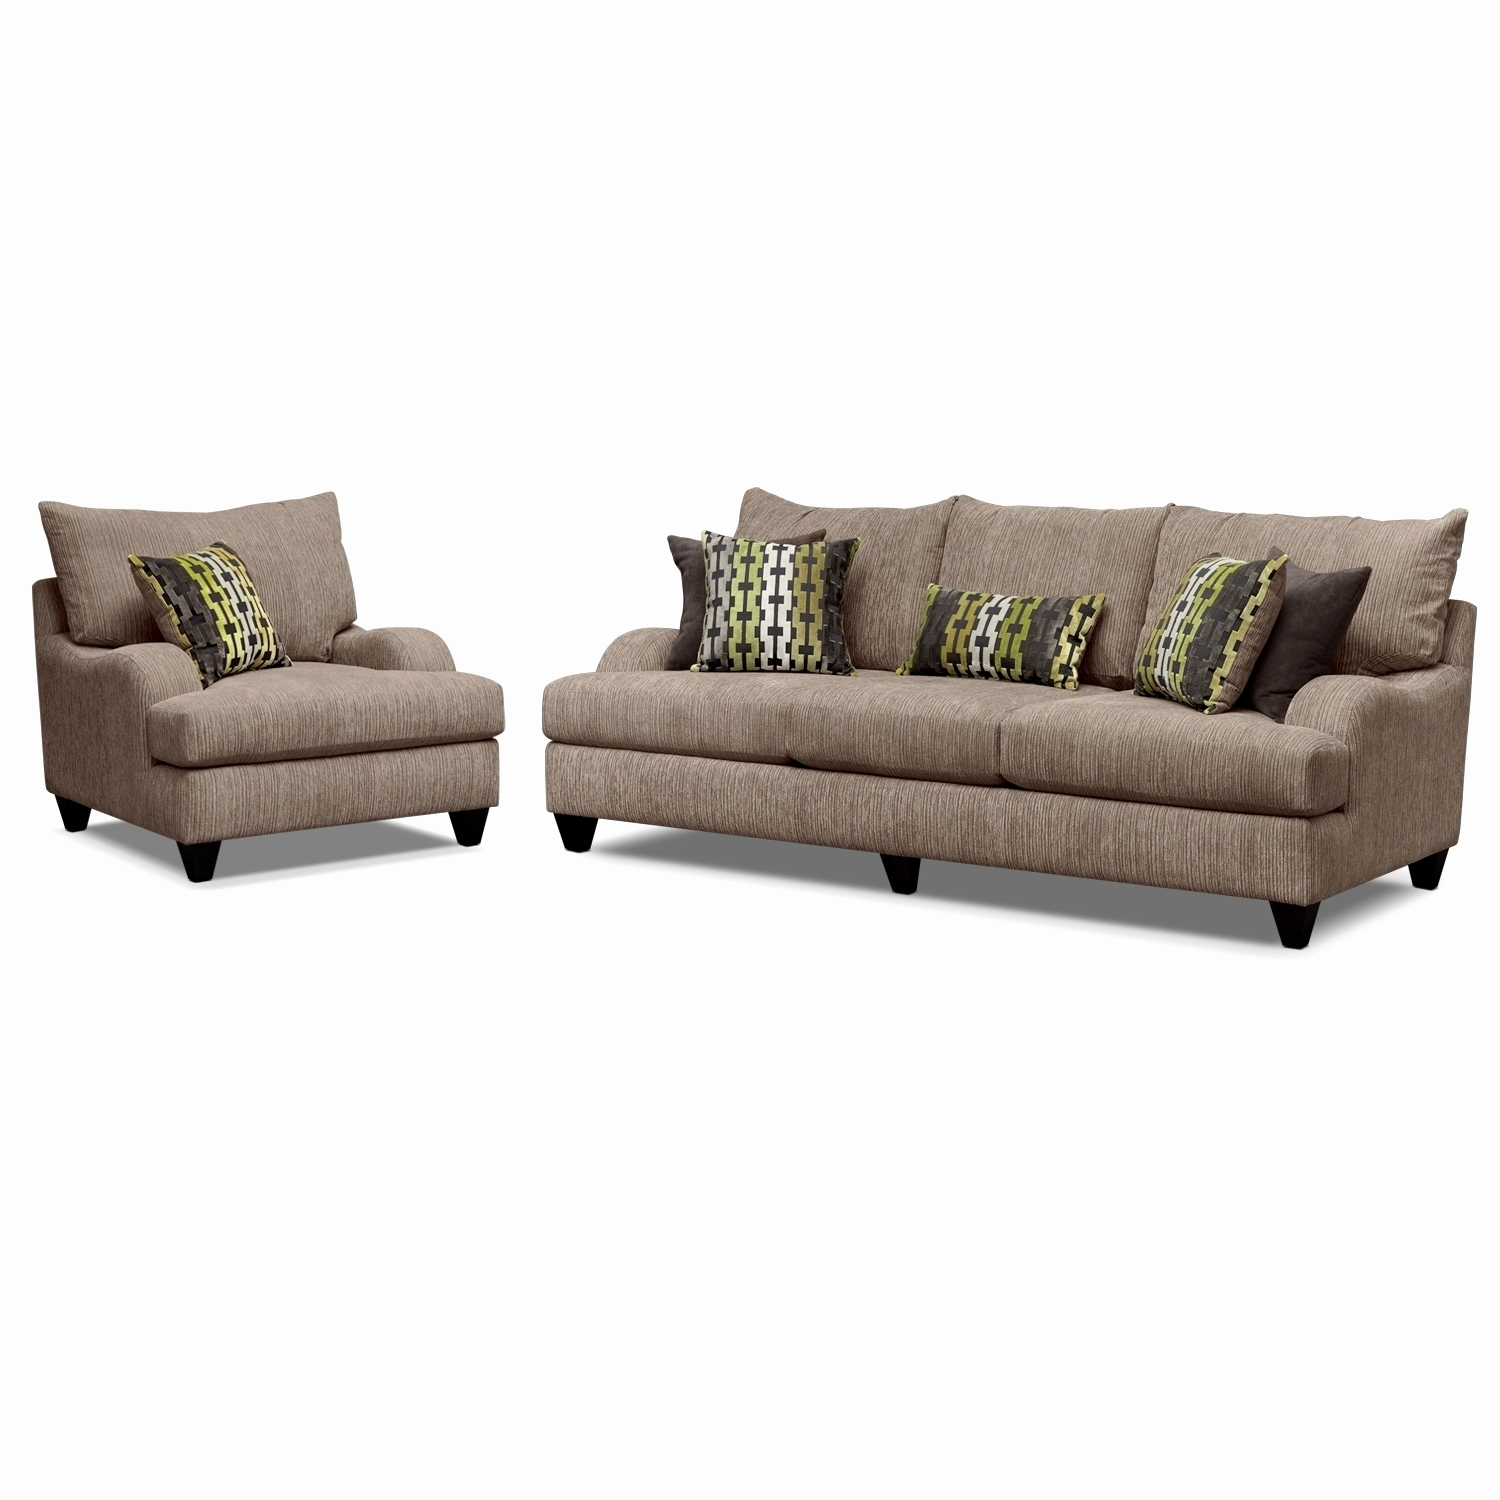 best sofa set under 10000 home depot table 10 ideas of sectional sofas 1500